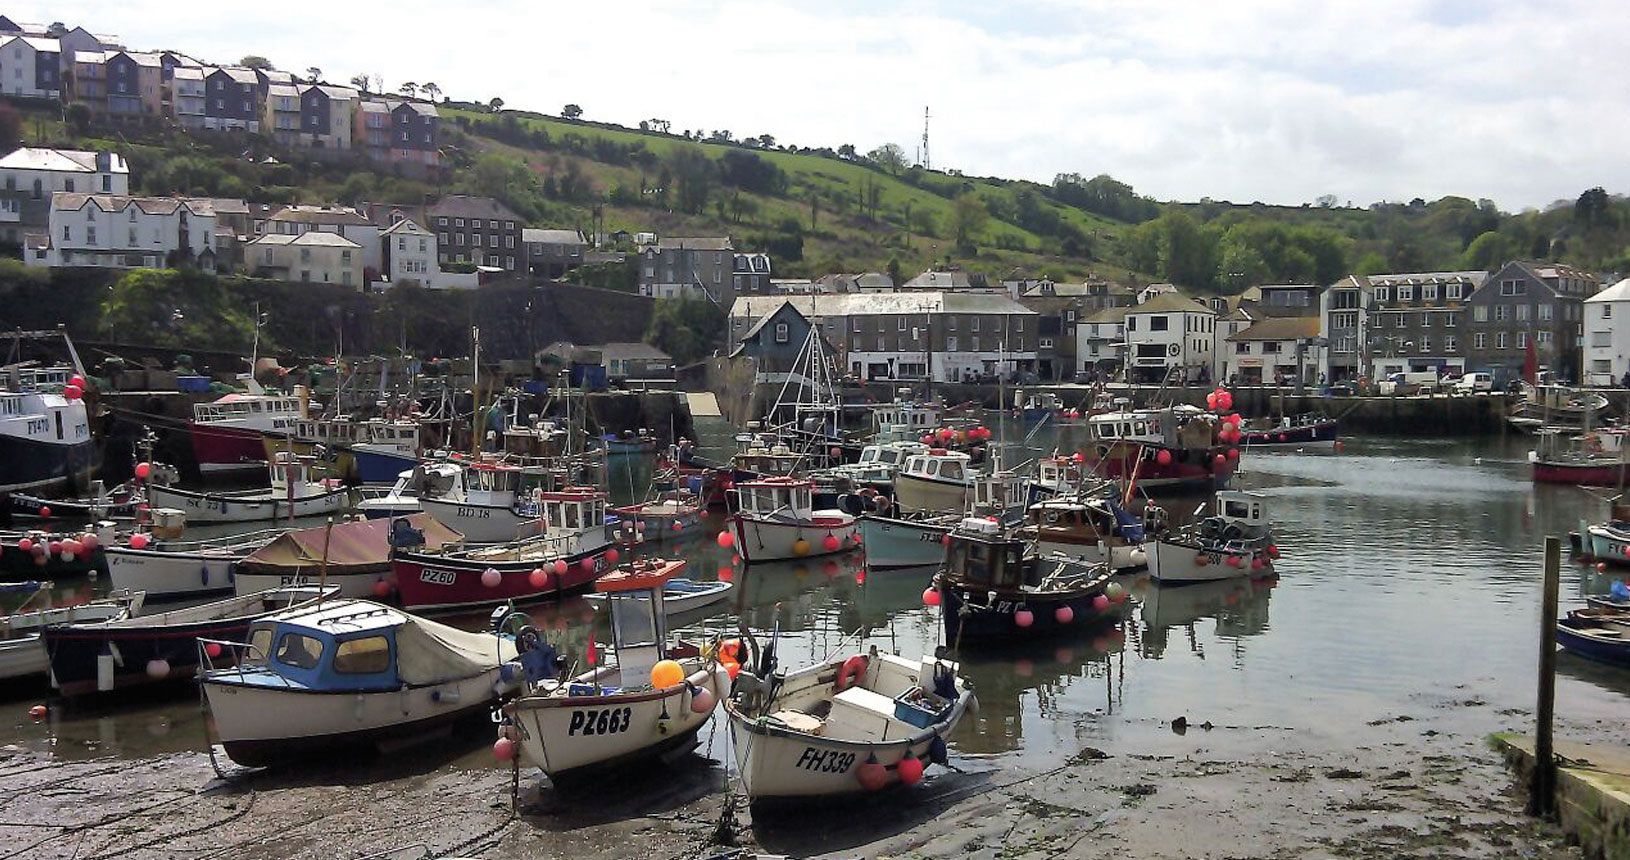 Carnwall harbour